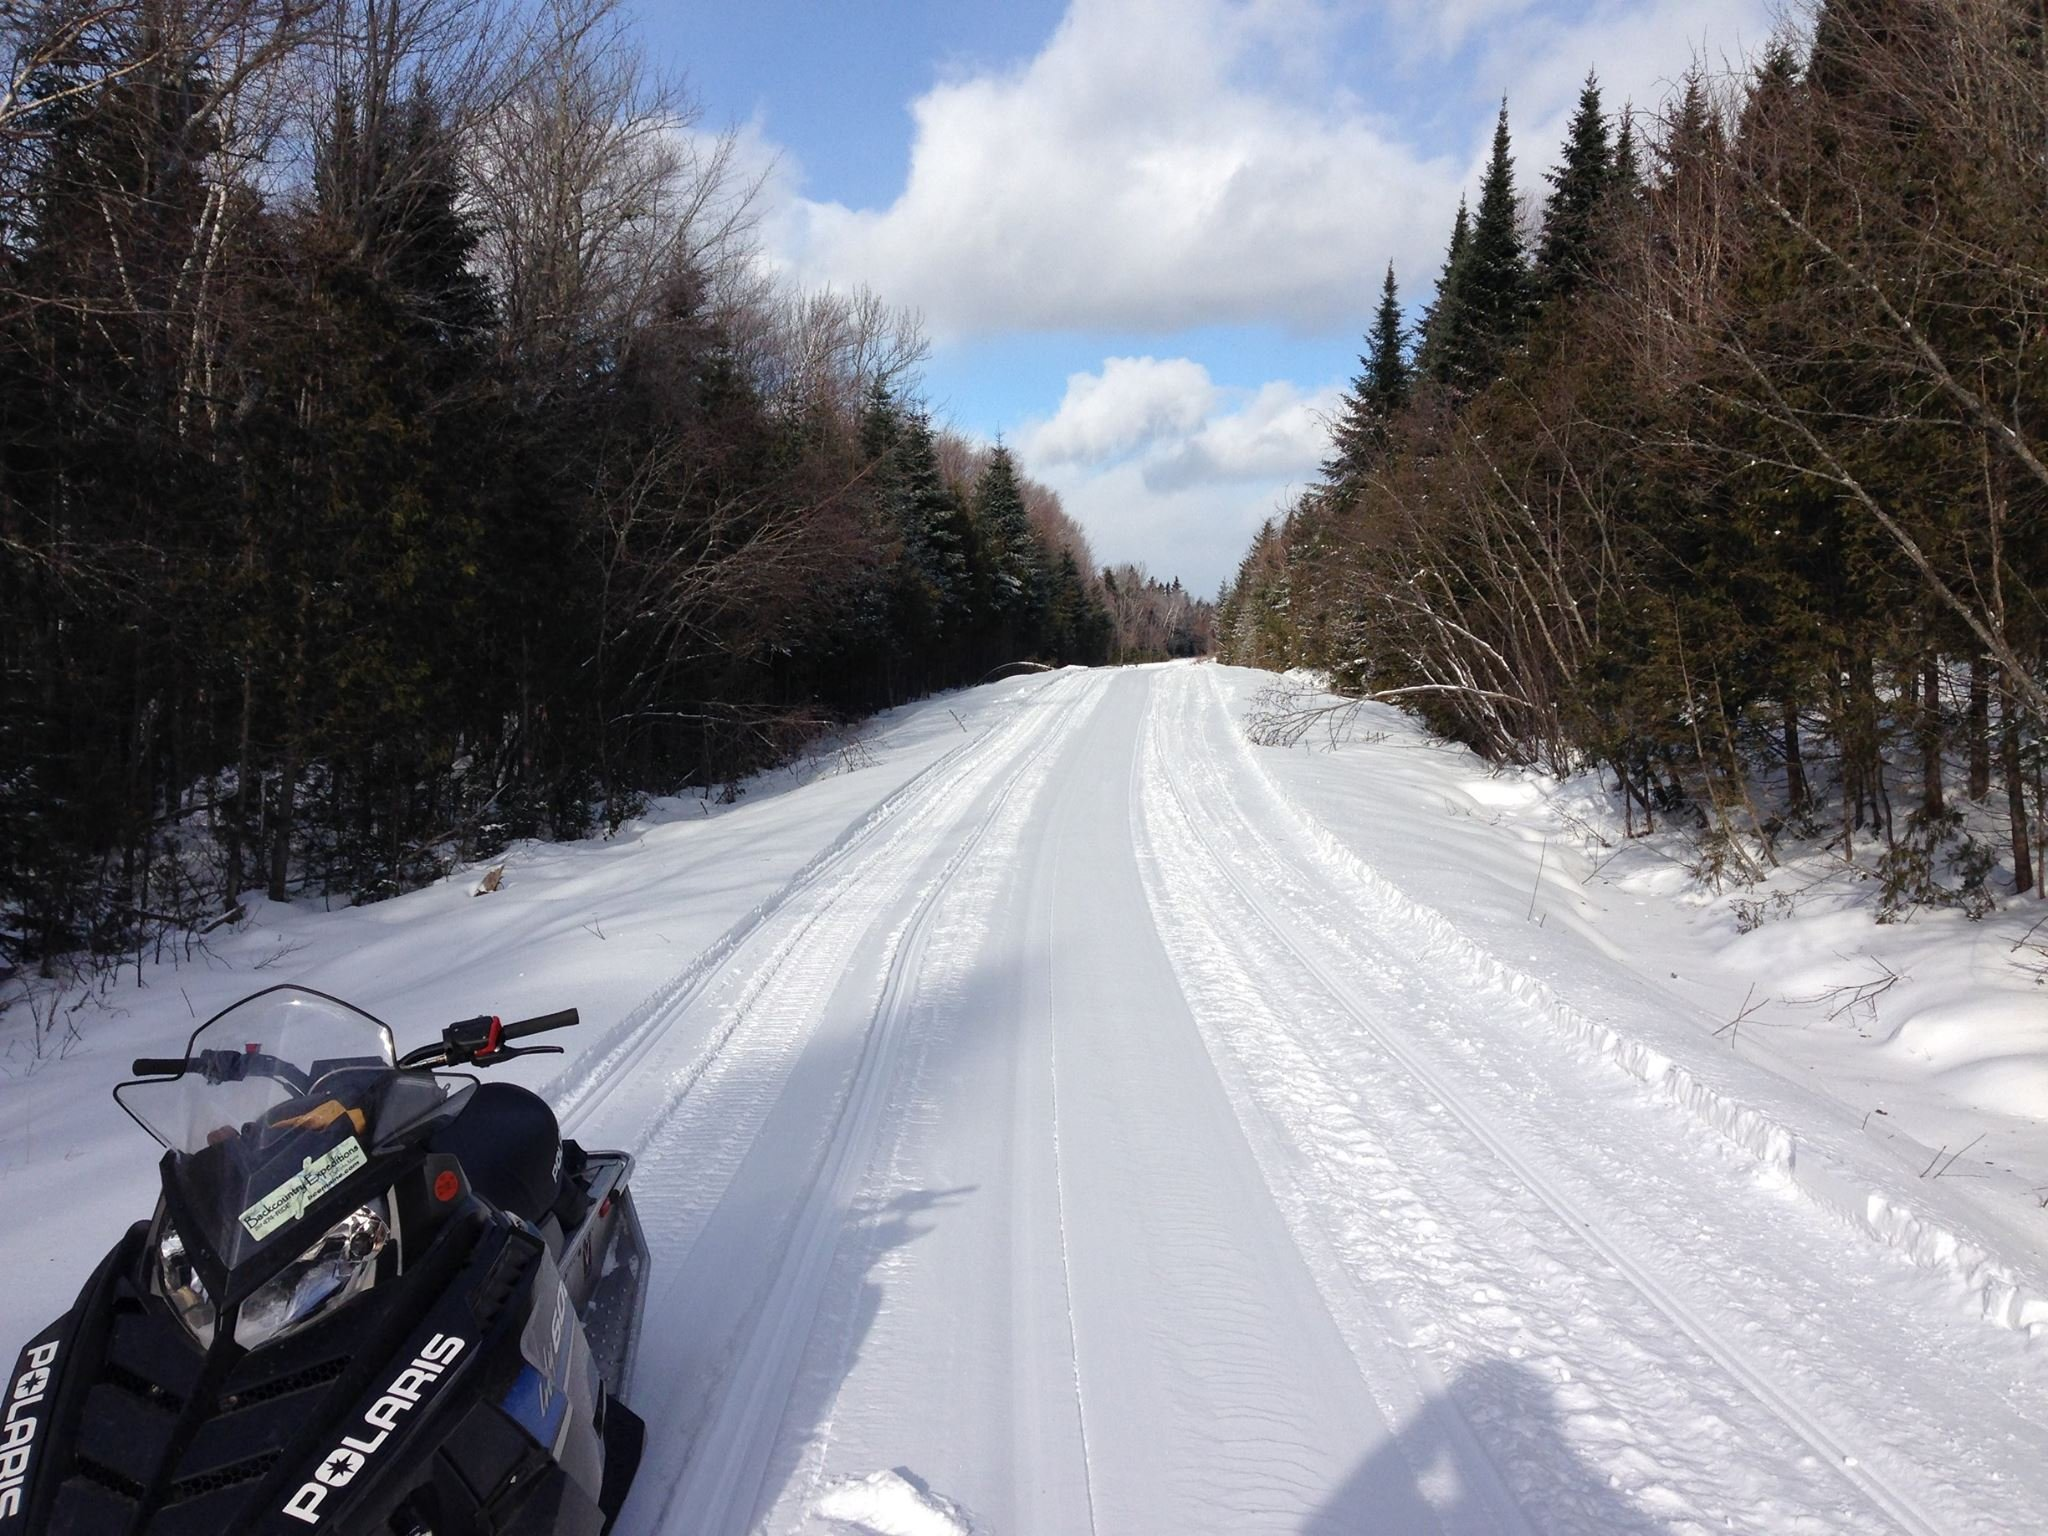 Local trails are groomed by clubs who maintain an incredible system to ride on for both beginners and experienced riders.